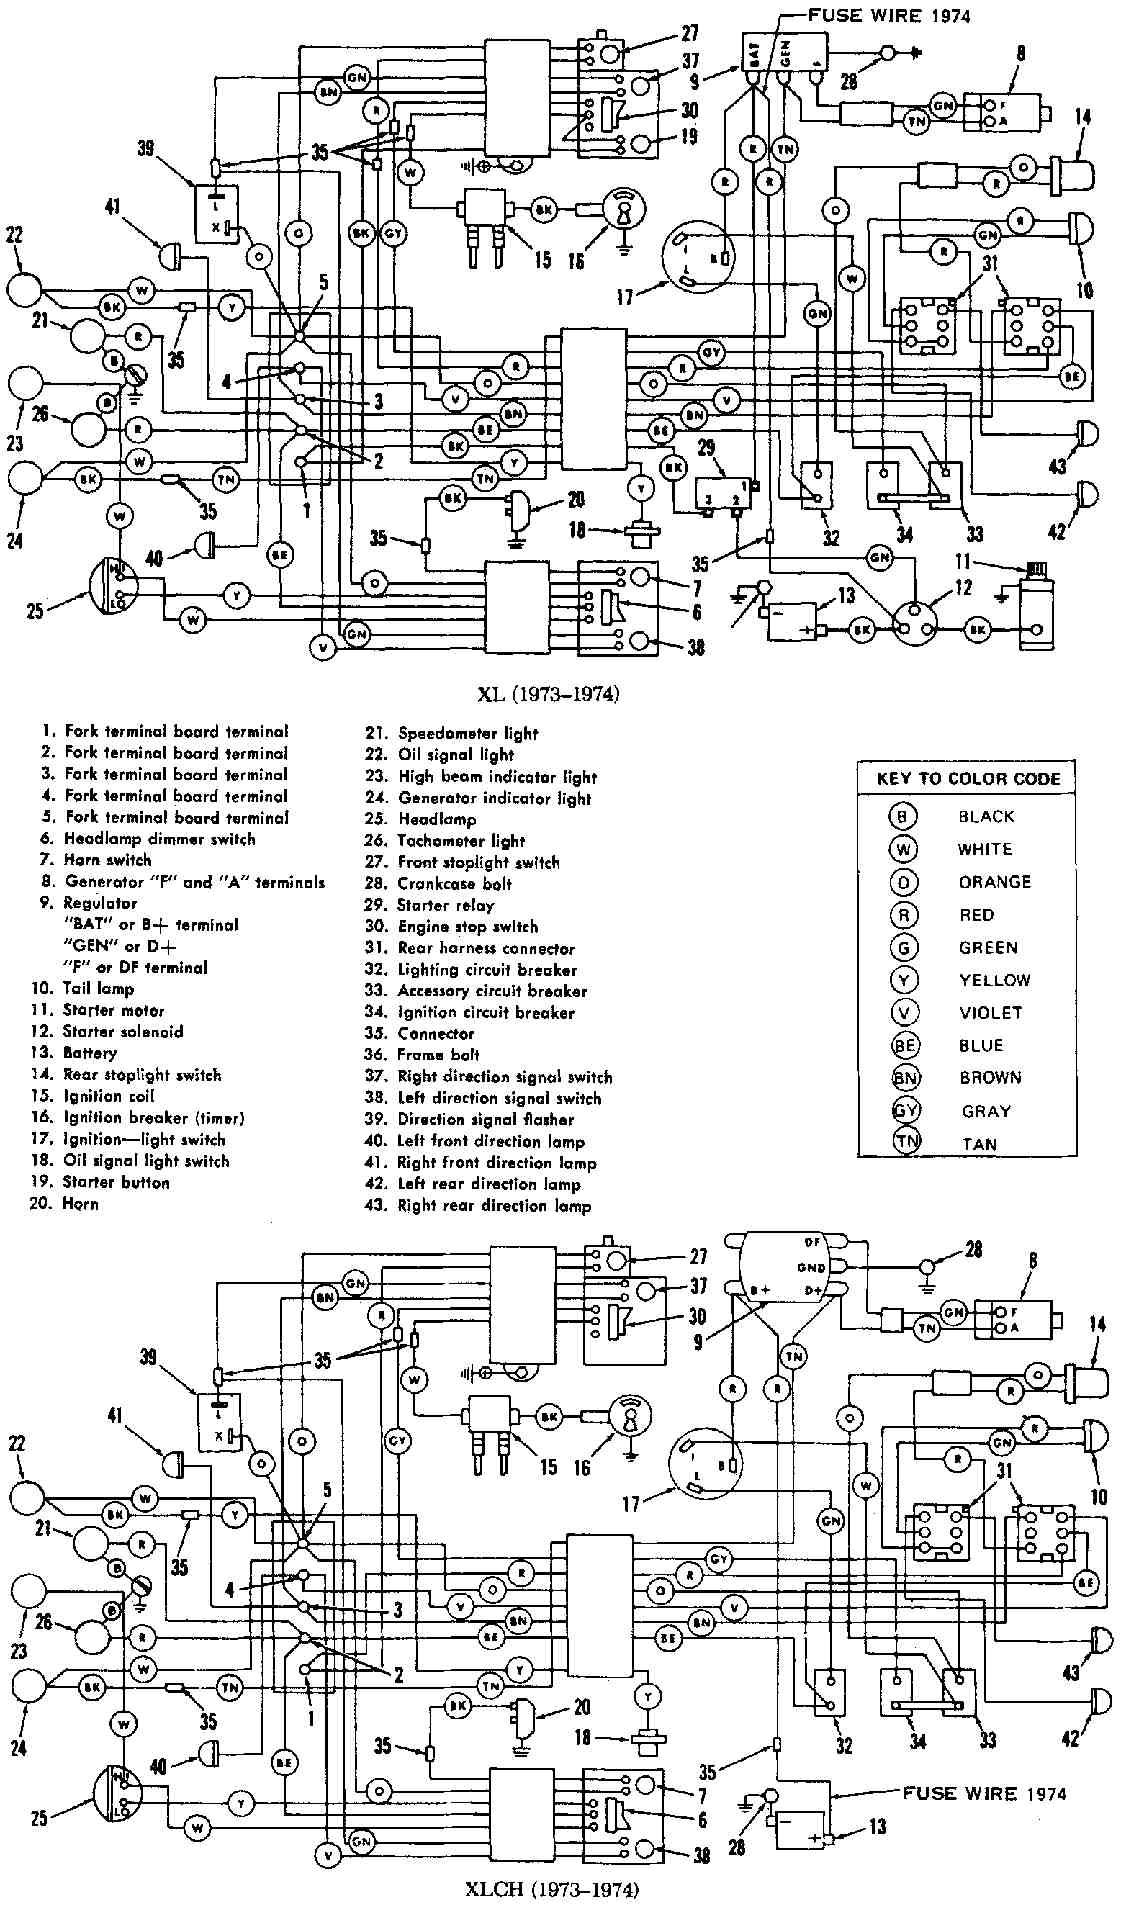 medium resolution of 1972 harley davidson wiring diagram simple wiring schema harley davidson drivetrain diagram 1972 harley davidson wiring diagram